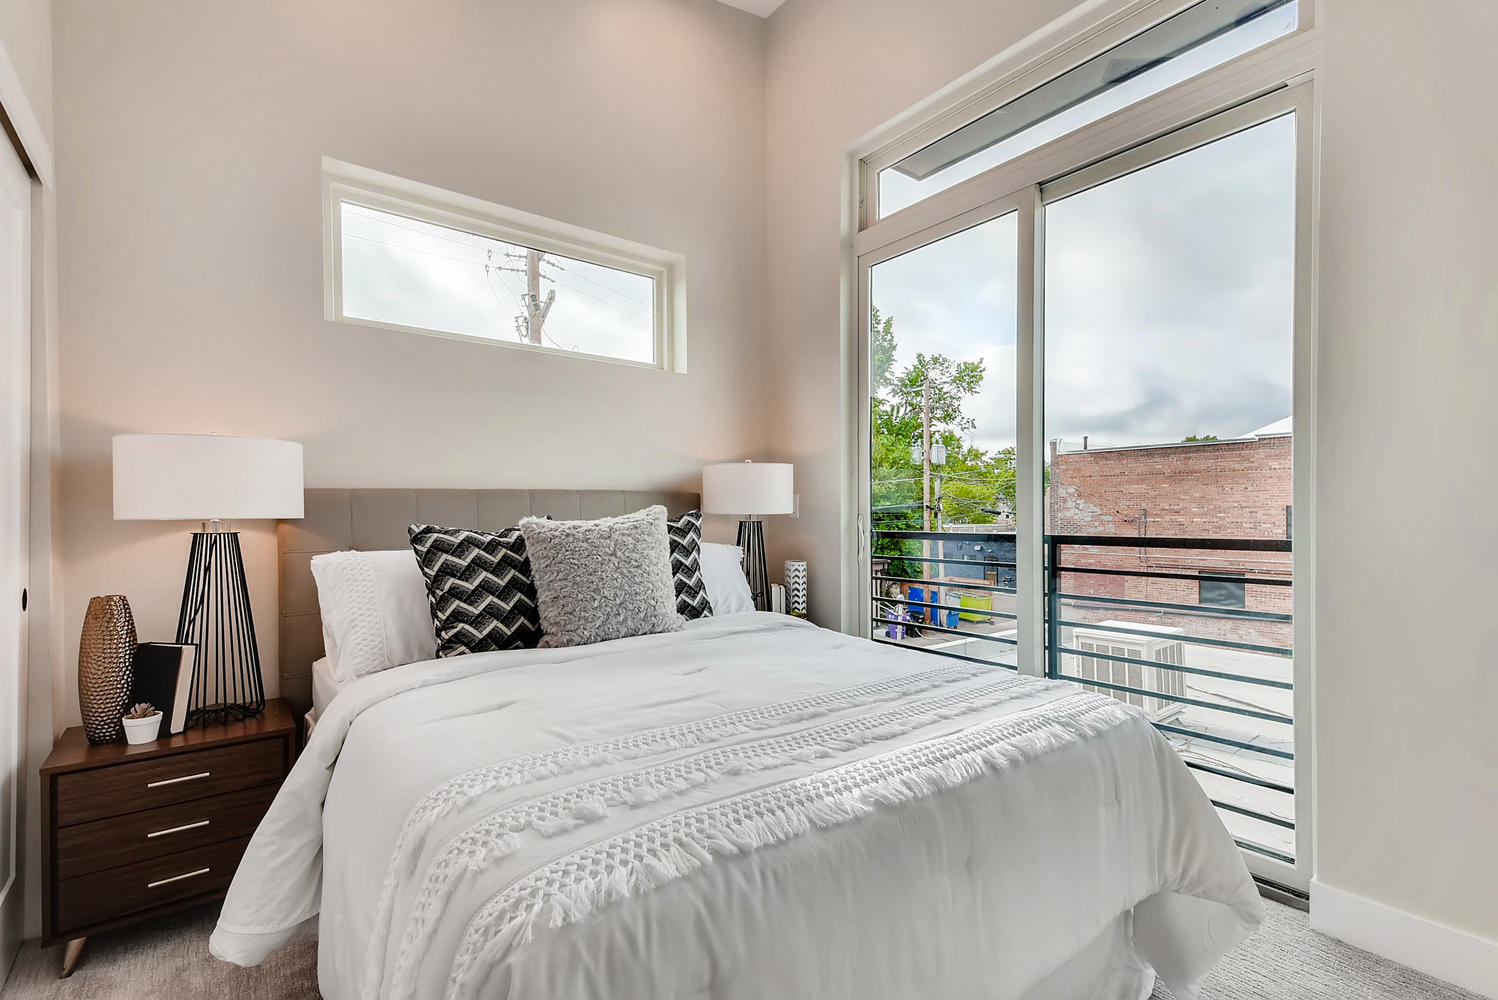 4432 Tennyson Unit 6 Denver CO-large-014-026-2nd Floor Master Bedroom-1499x1000-72dpi